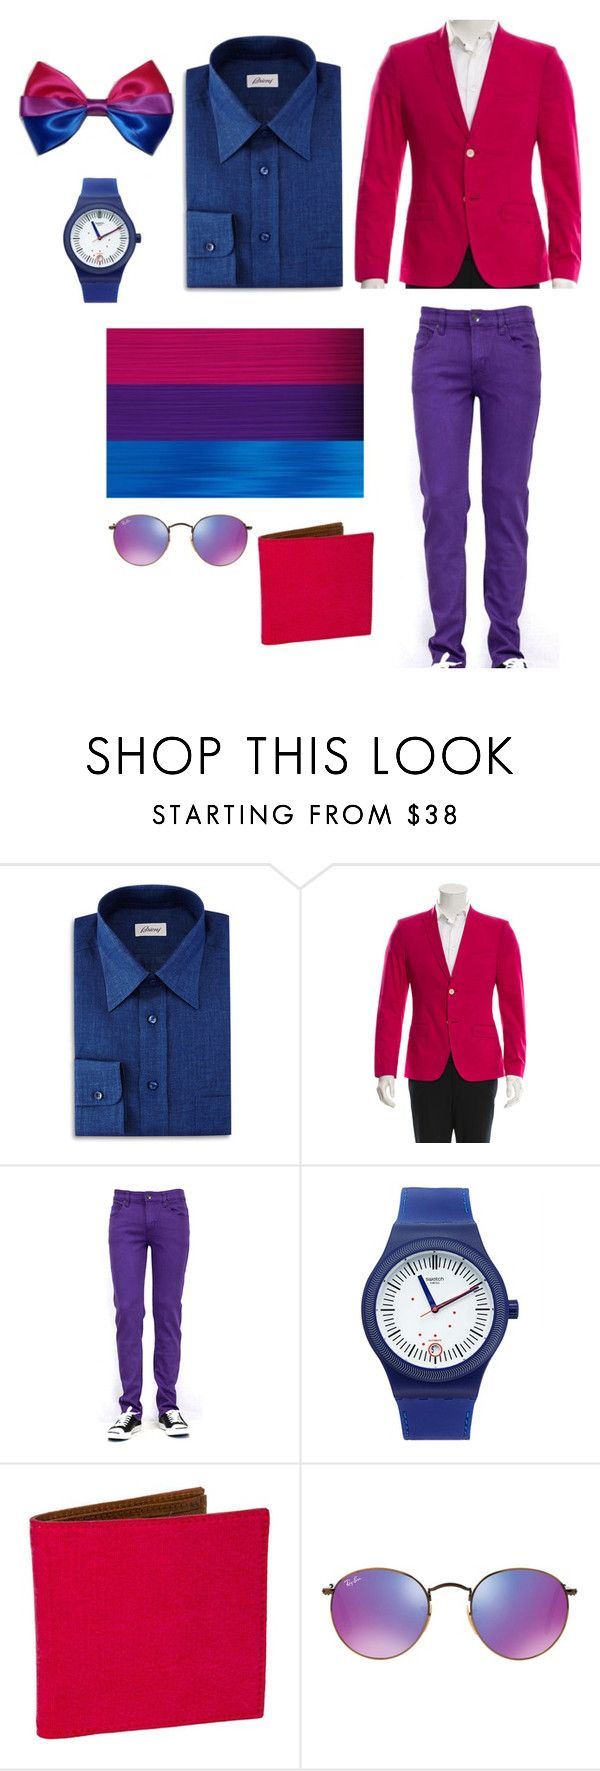 """""""Bisexual pride"""" by littleapplecat ❤ liked on Polyvore featuring Brioni, Kenzo, Swatch, 40 Colori, Ray-Ban, men's fashion, menswear, pride, bisexual and Bisexualityexists"""